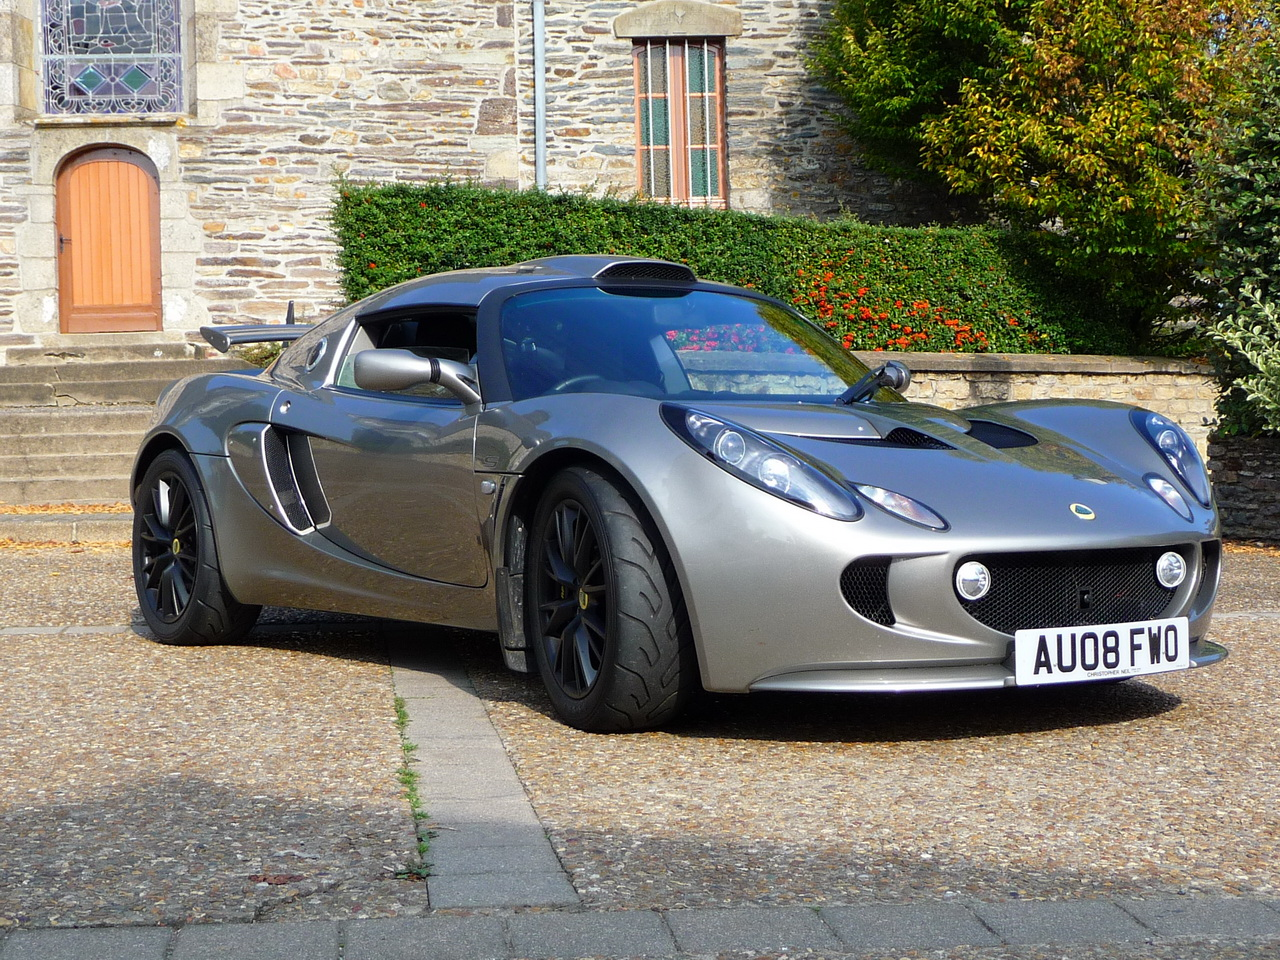 exige british annonces lotus elise lotus exige occasions triumph mg tvr. Black Bedroom Furniture Sets. Home Design Ideas